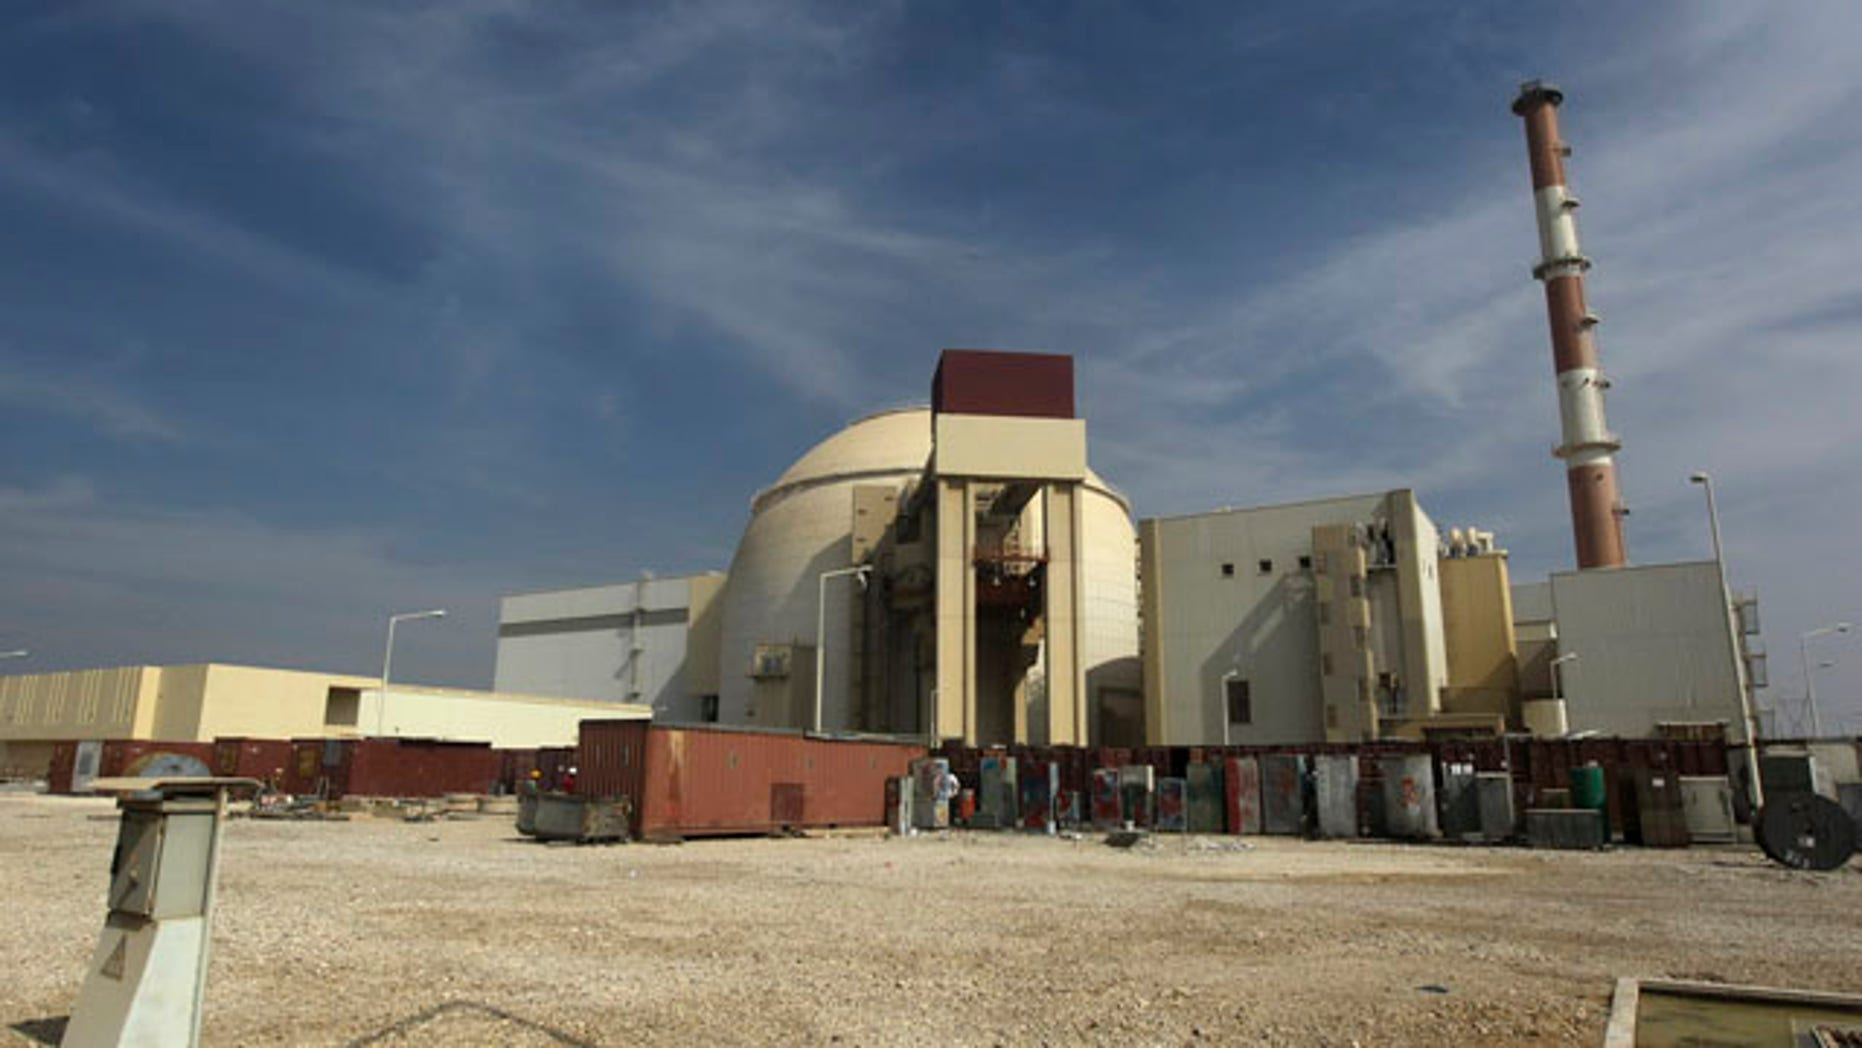 Oct. 26, 2010: A worker rides a bicycle in front of the reactor building of the Bushehr nuclear power plant in Iran.